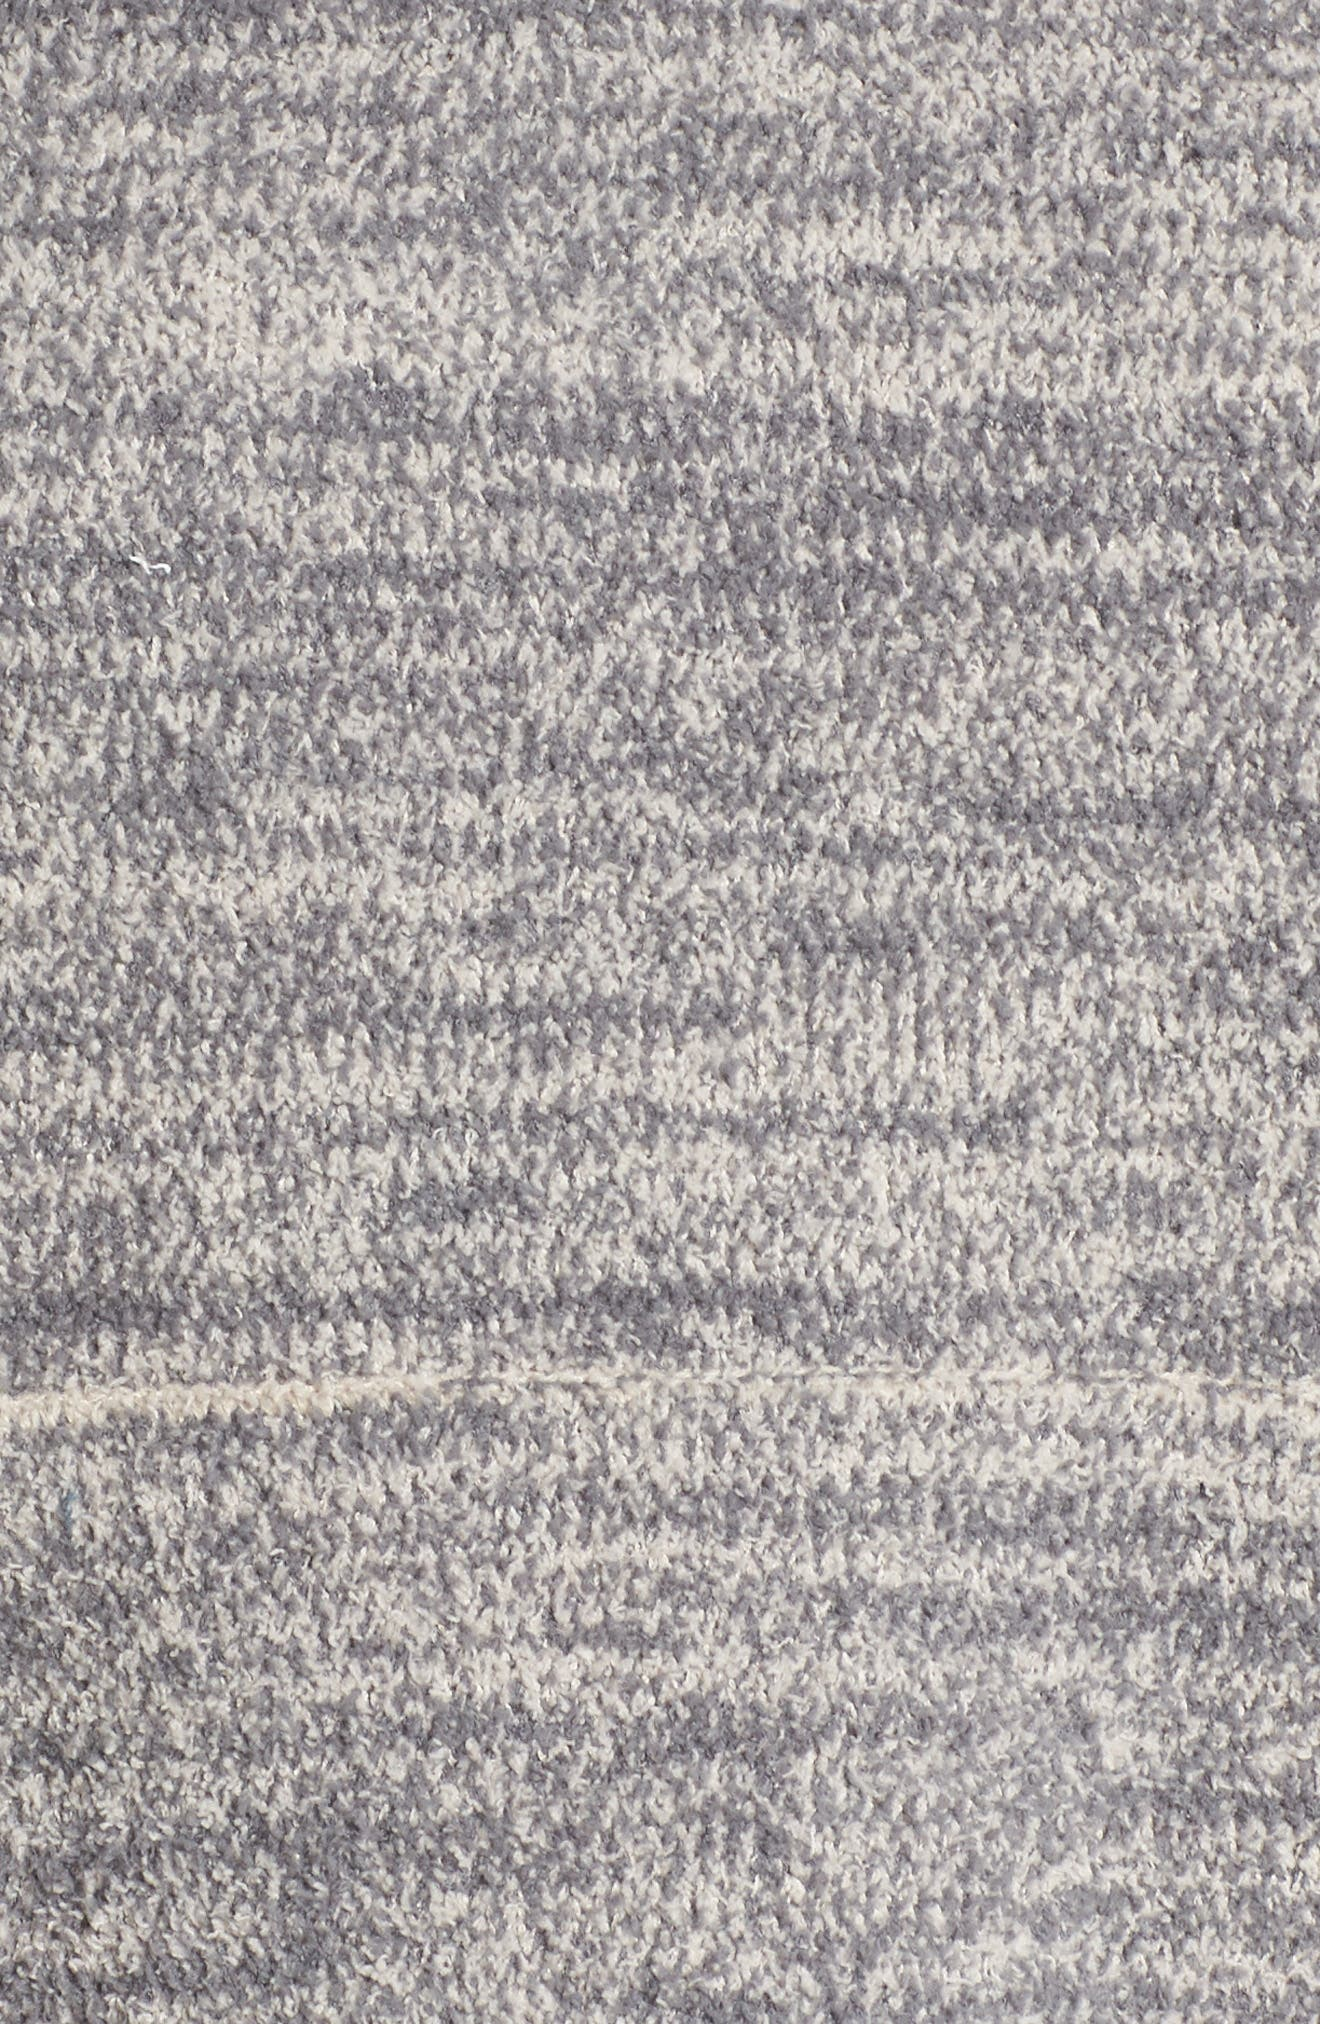 Cozychic<sup>®</sup> Lounge Pullover,                             Alternate thumbnail 5, color,                             GRAPHITE/ STONE HEATHERED